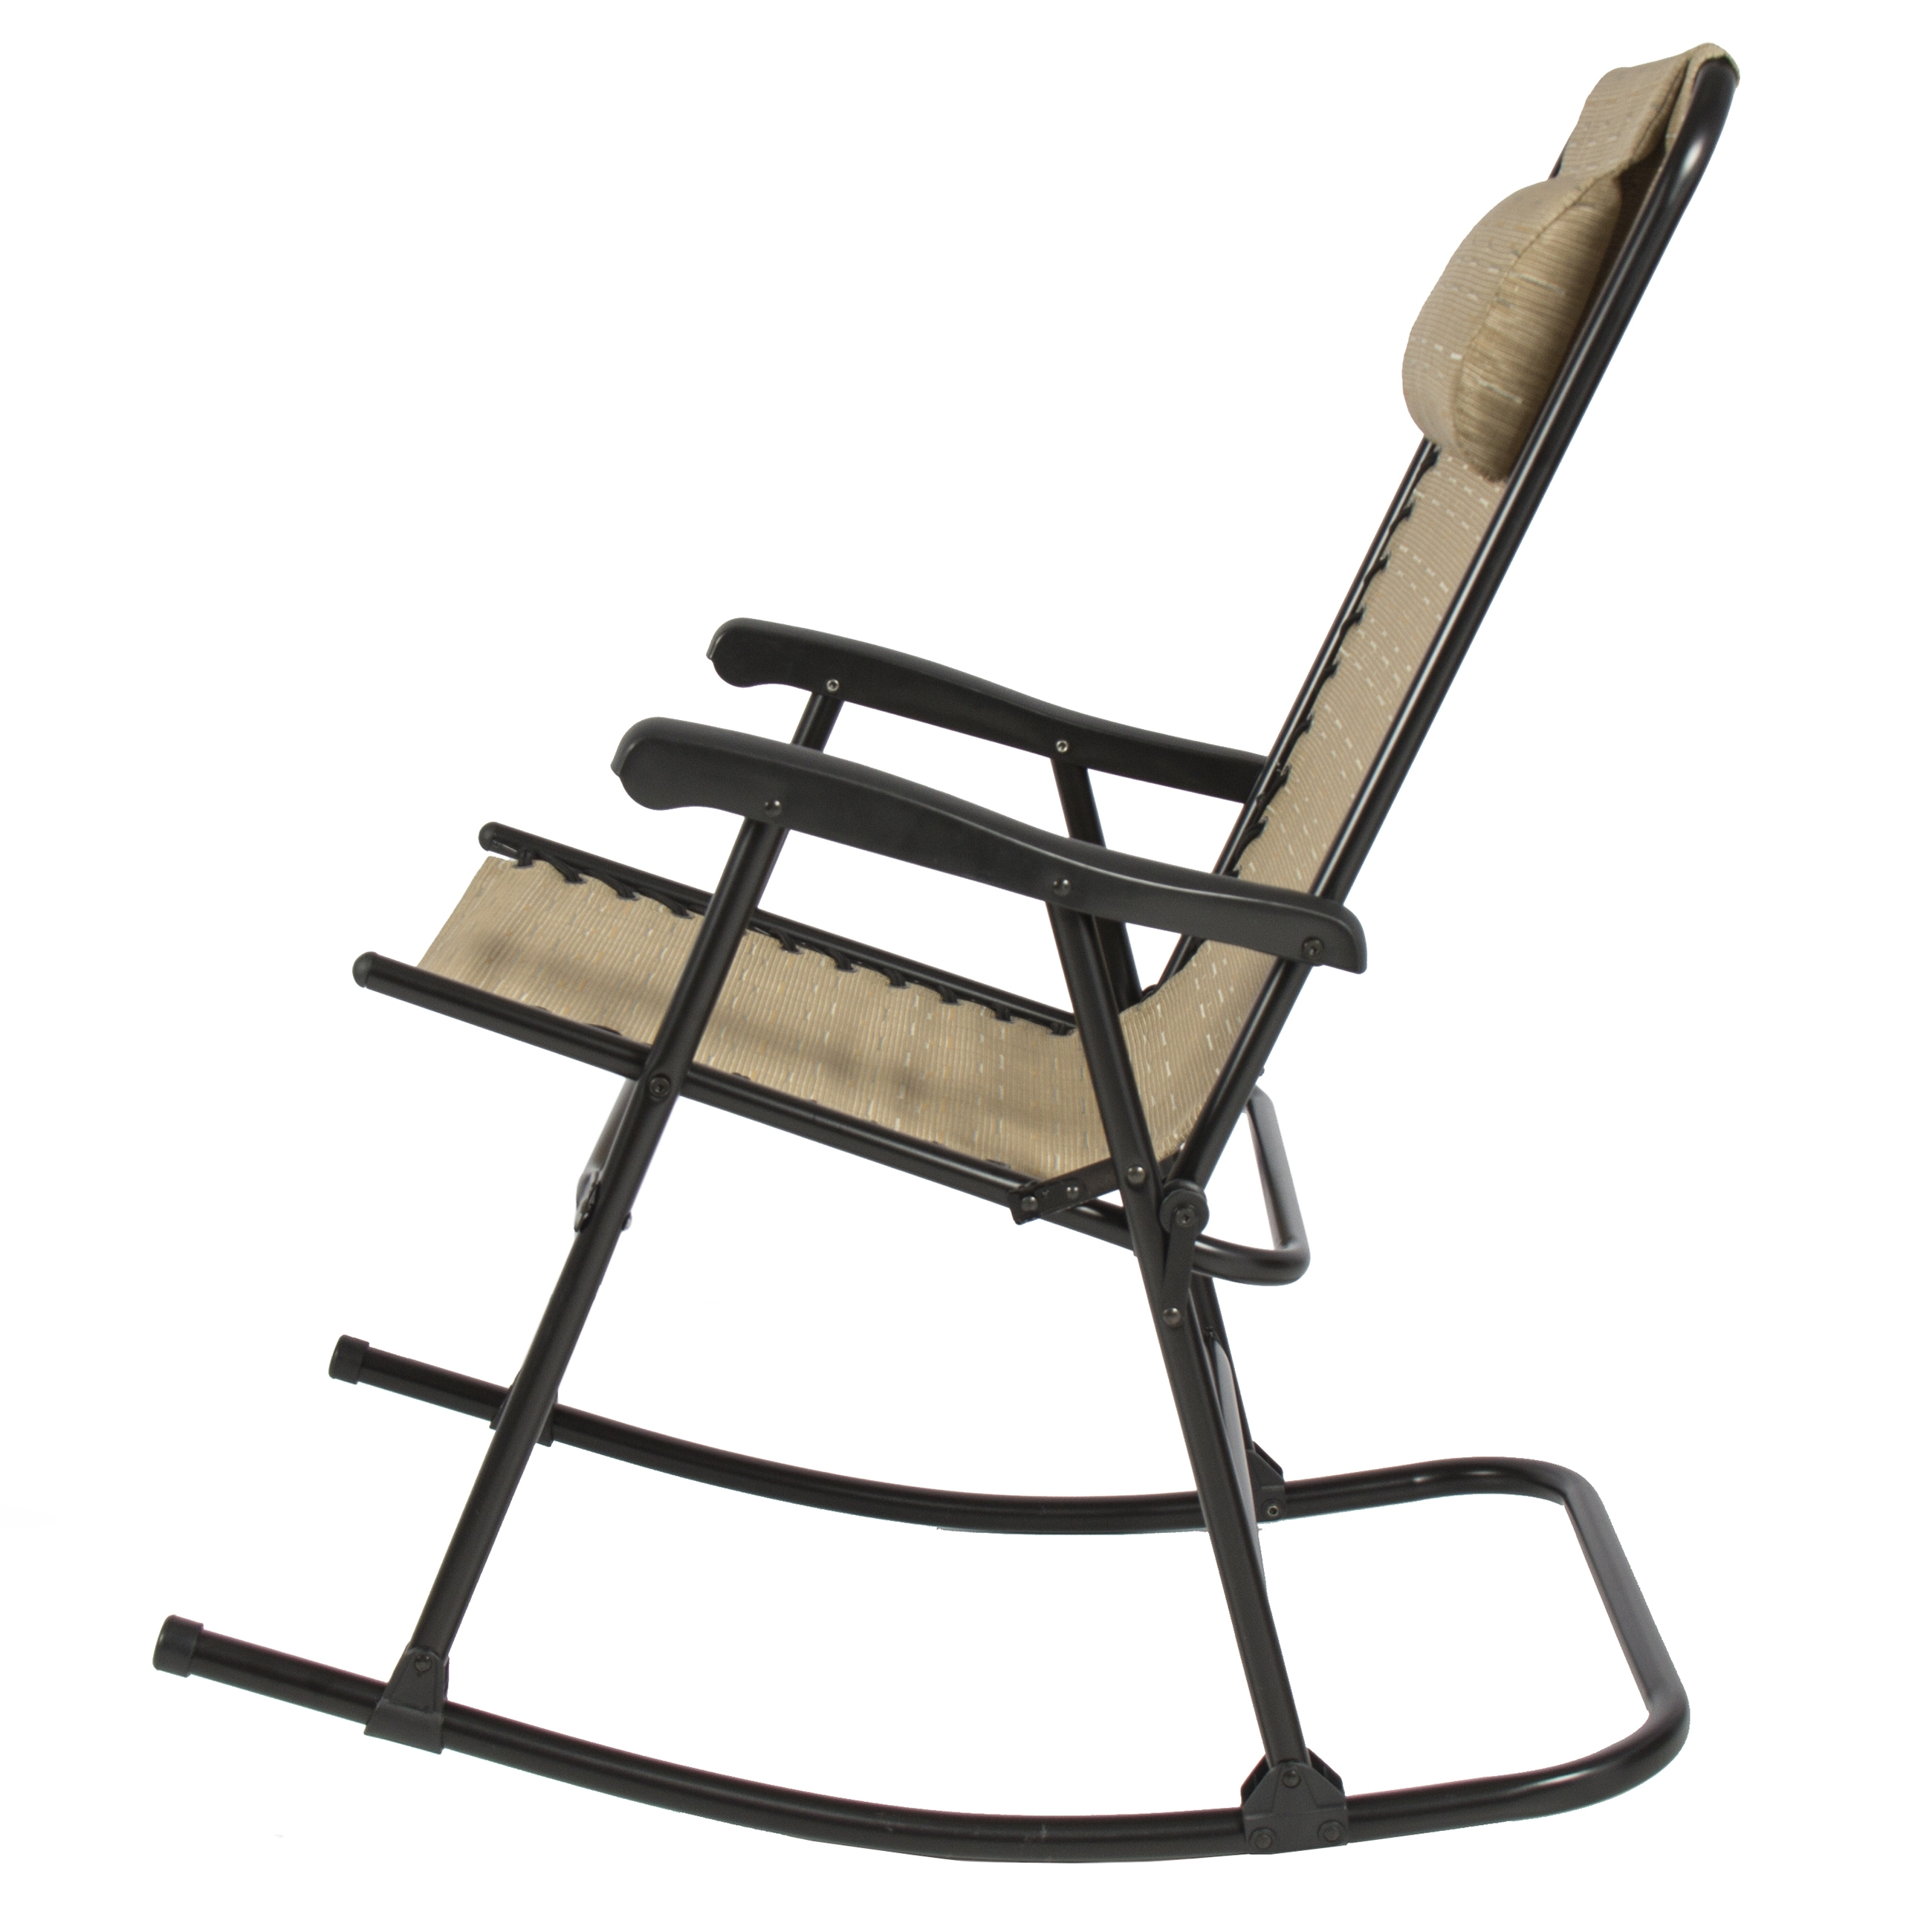 Folding Rocking Chair Foldable Rocker Outdoor Patio Furniture Beige In Most Up To Date Folding Rocking Chairs (View 6 of 15)